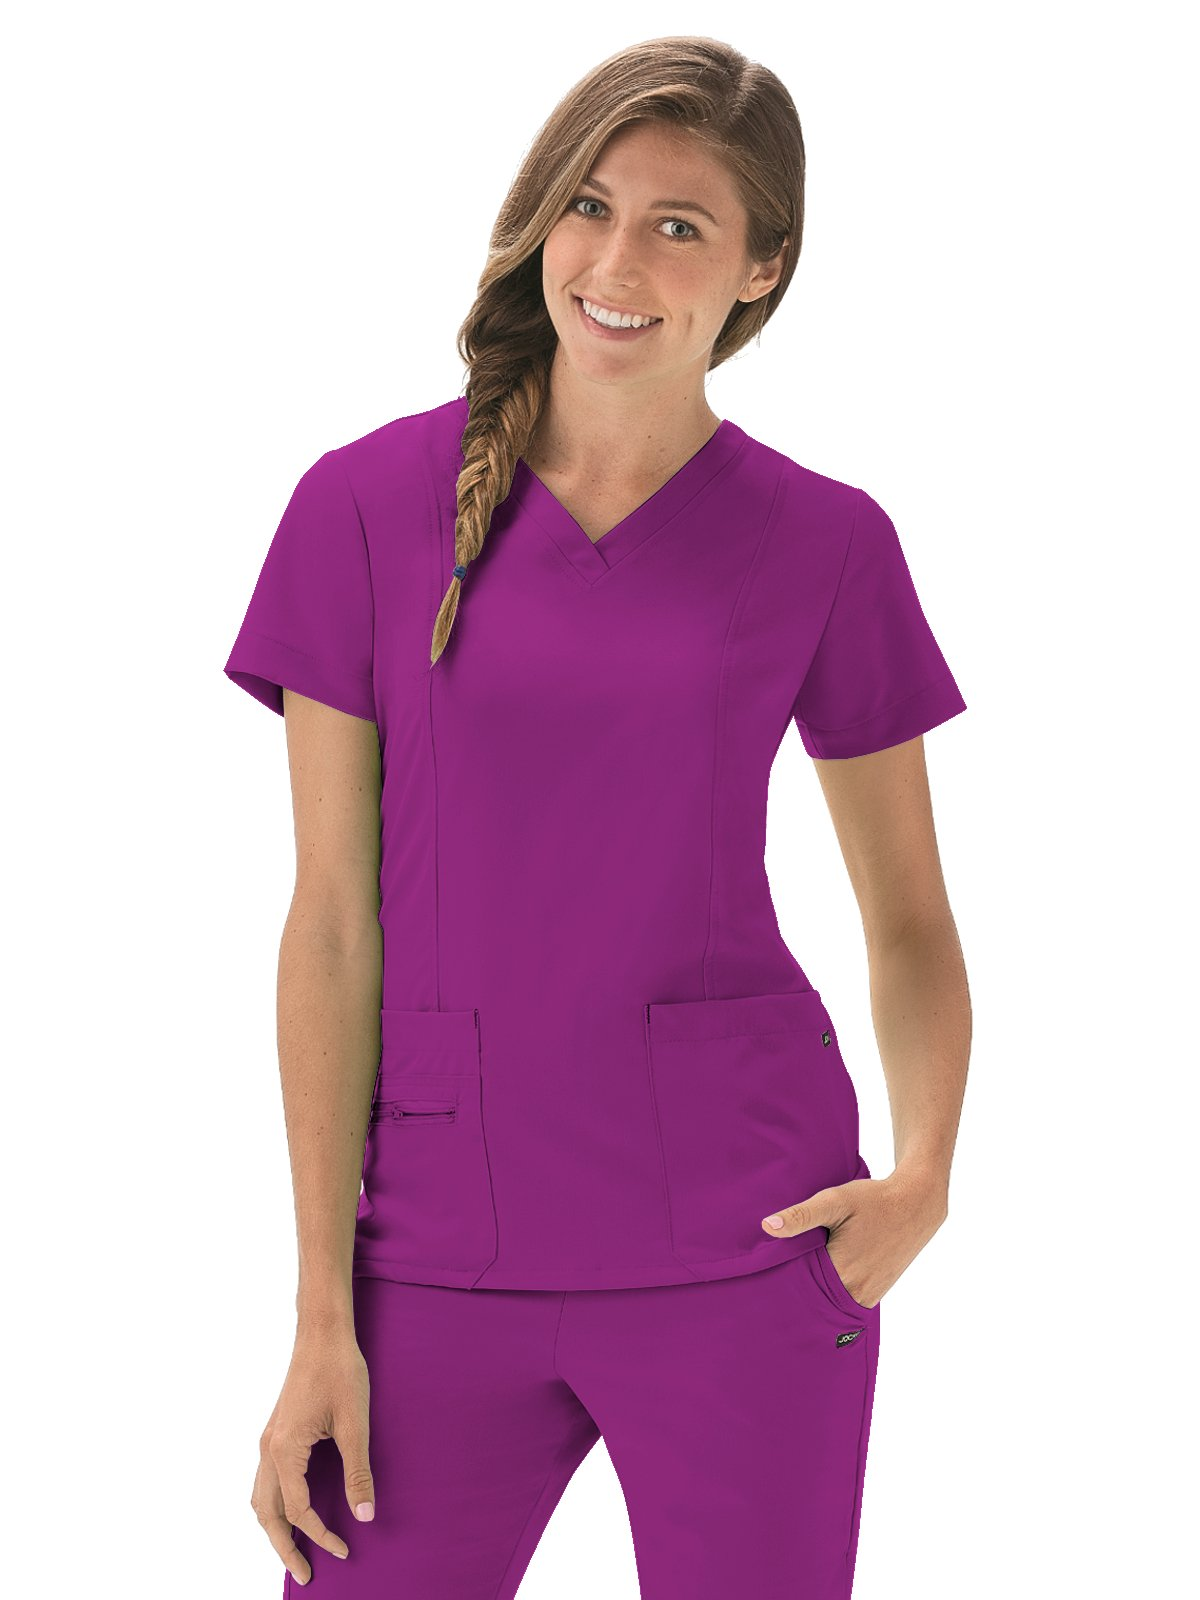 Modern Fit Collection by Jockey Women's Zipper Pocket V-Neck Solid Scrub Top XX-Large Plumberry Wine